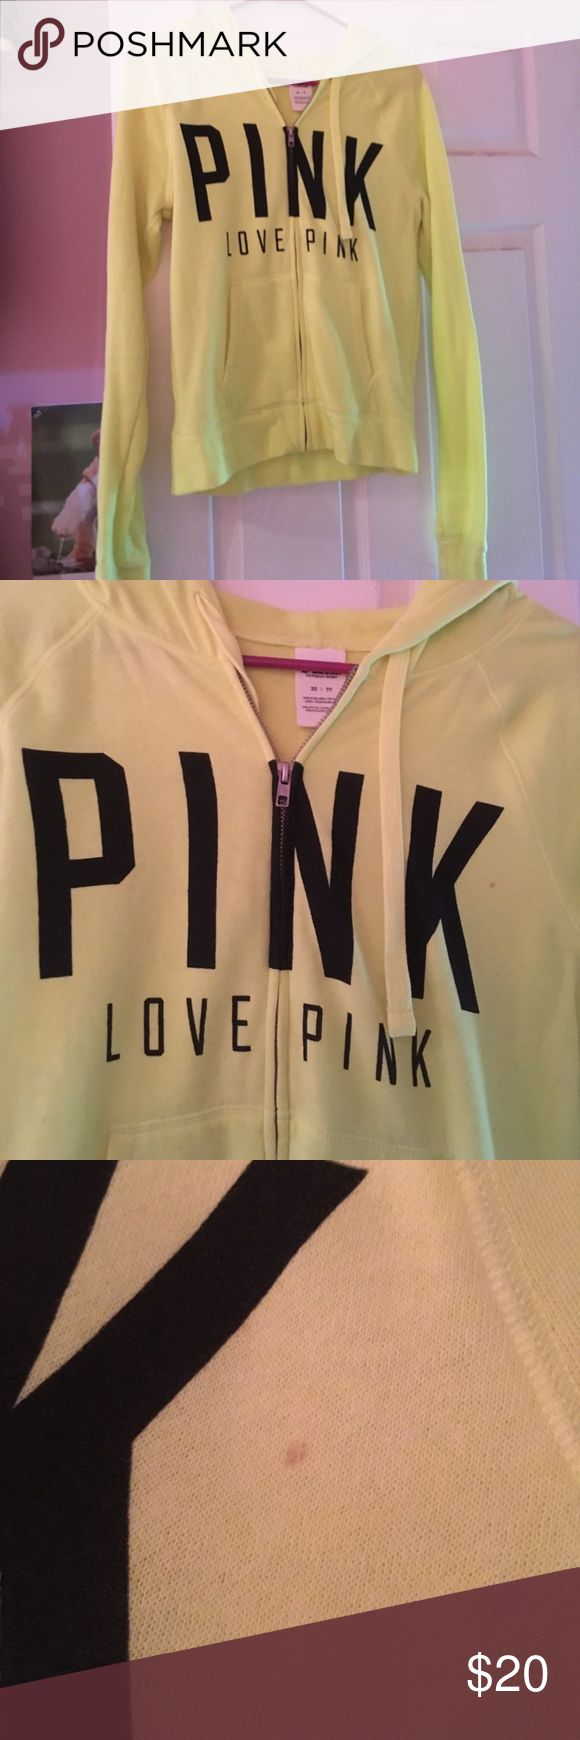 Neon Victoria's Secret PINK sweatshirt Adorable neon yellow zip up sweatshirt from Victoria's Secret PINK. Small stain on the chest, but it is hardly noticeable. PINK Victoria's Secret Tops Sweatshirts & Hoodies